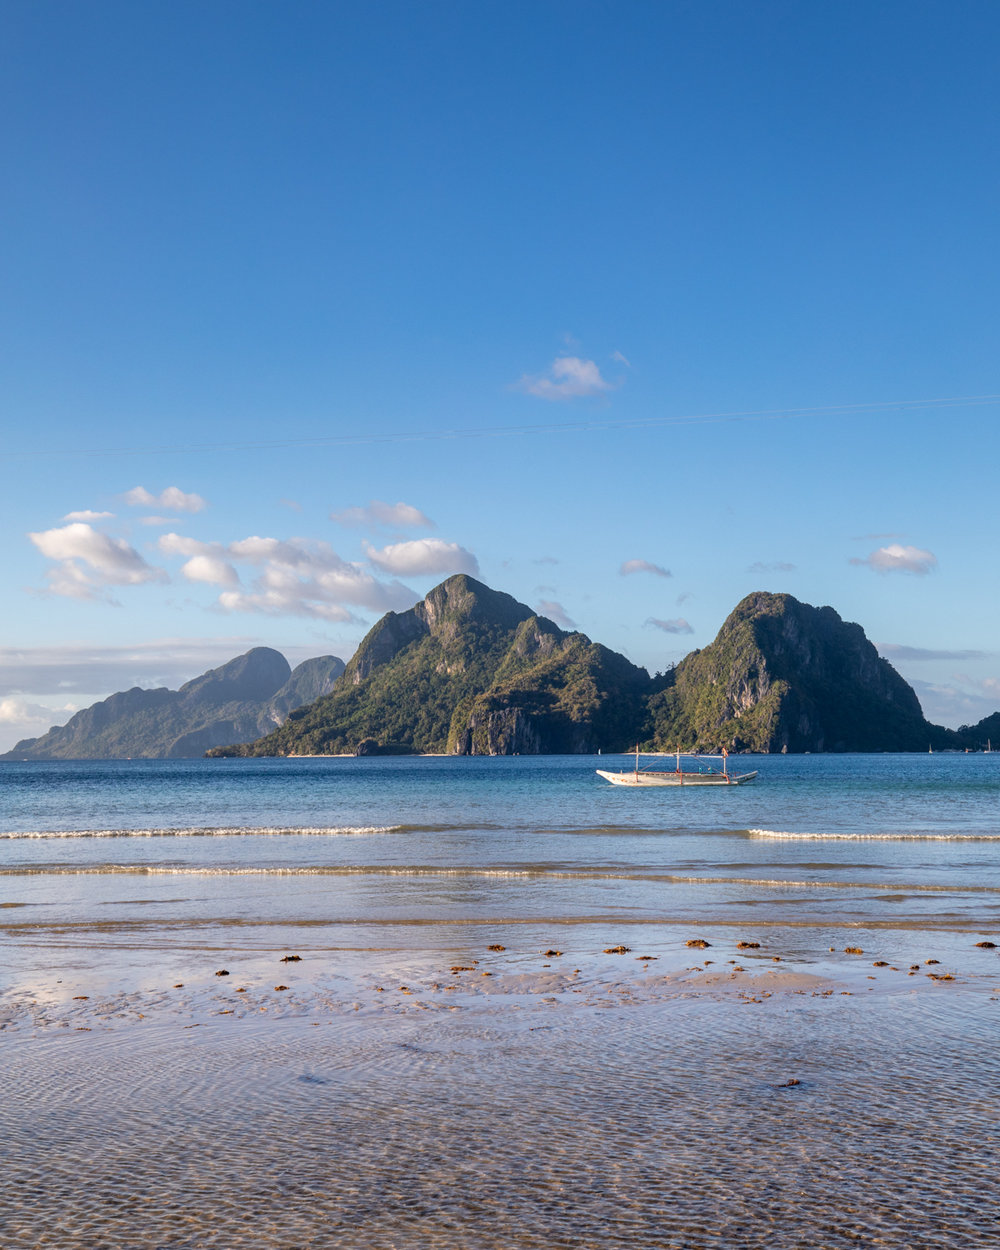 The view from Merrimegmeg Beach, Palawan